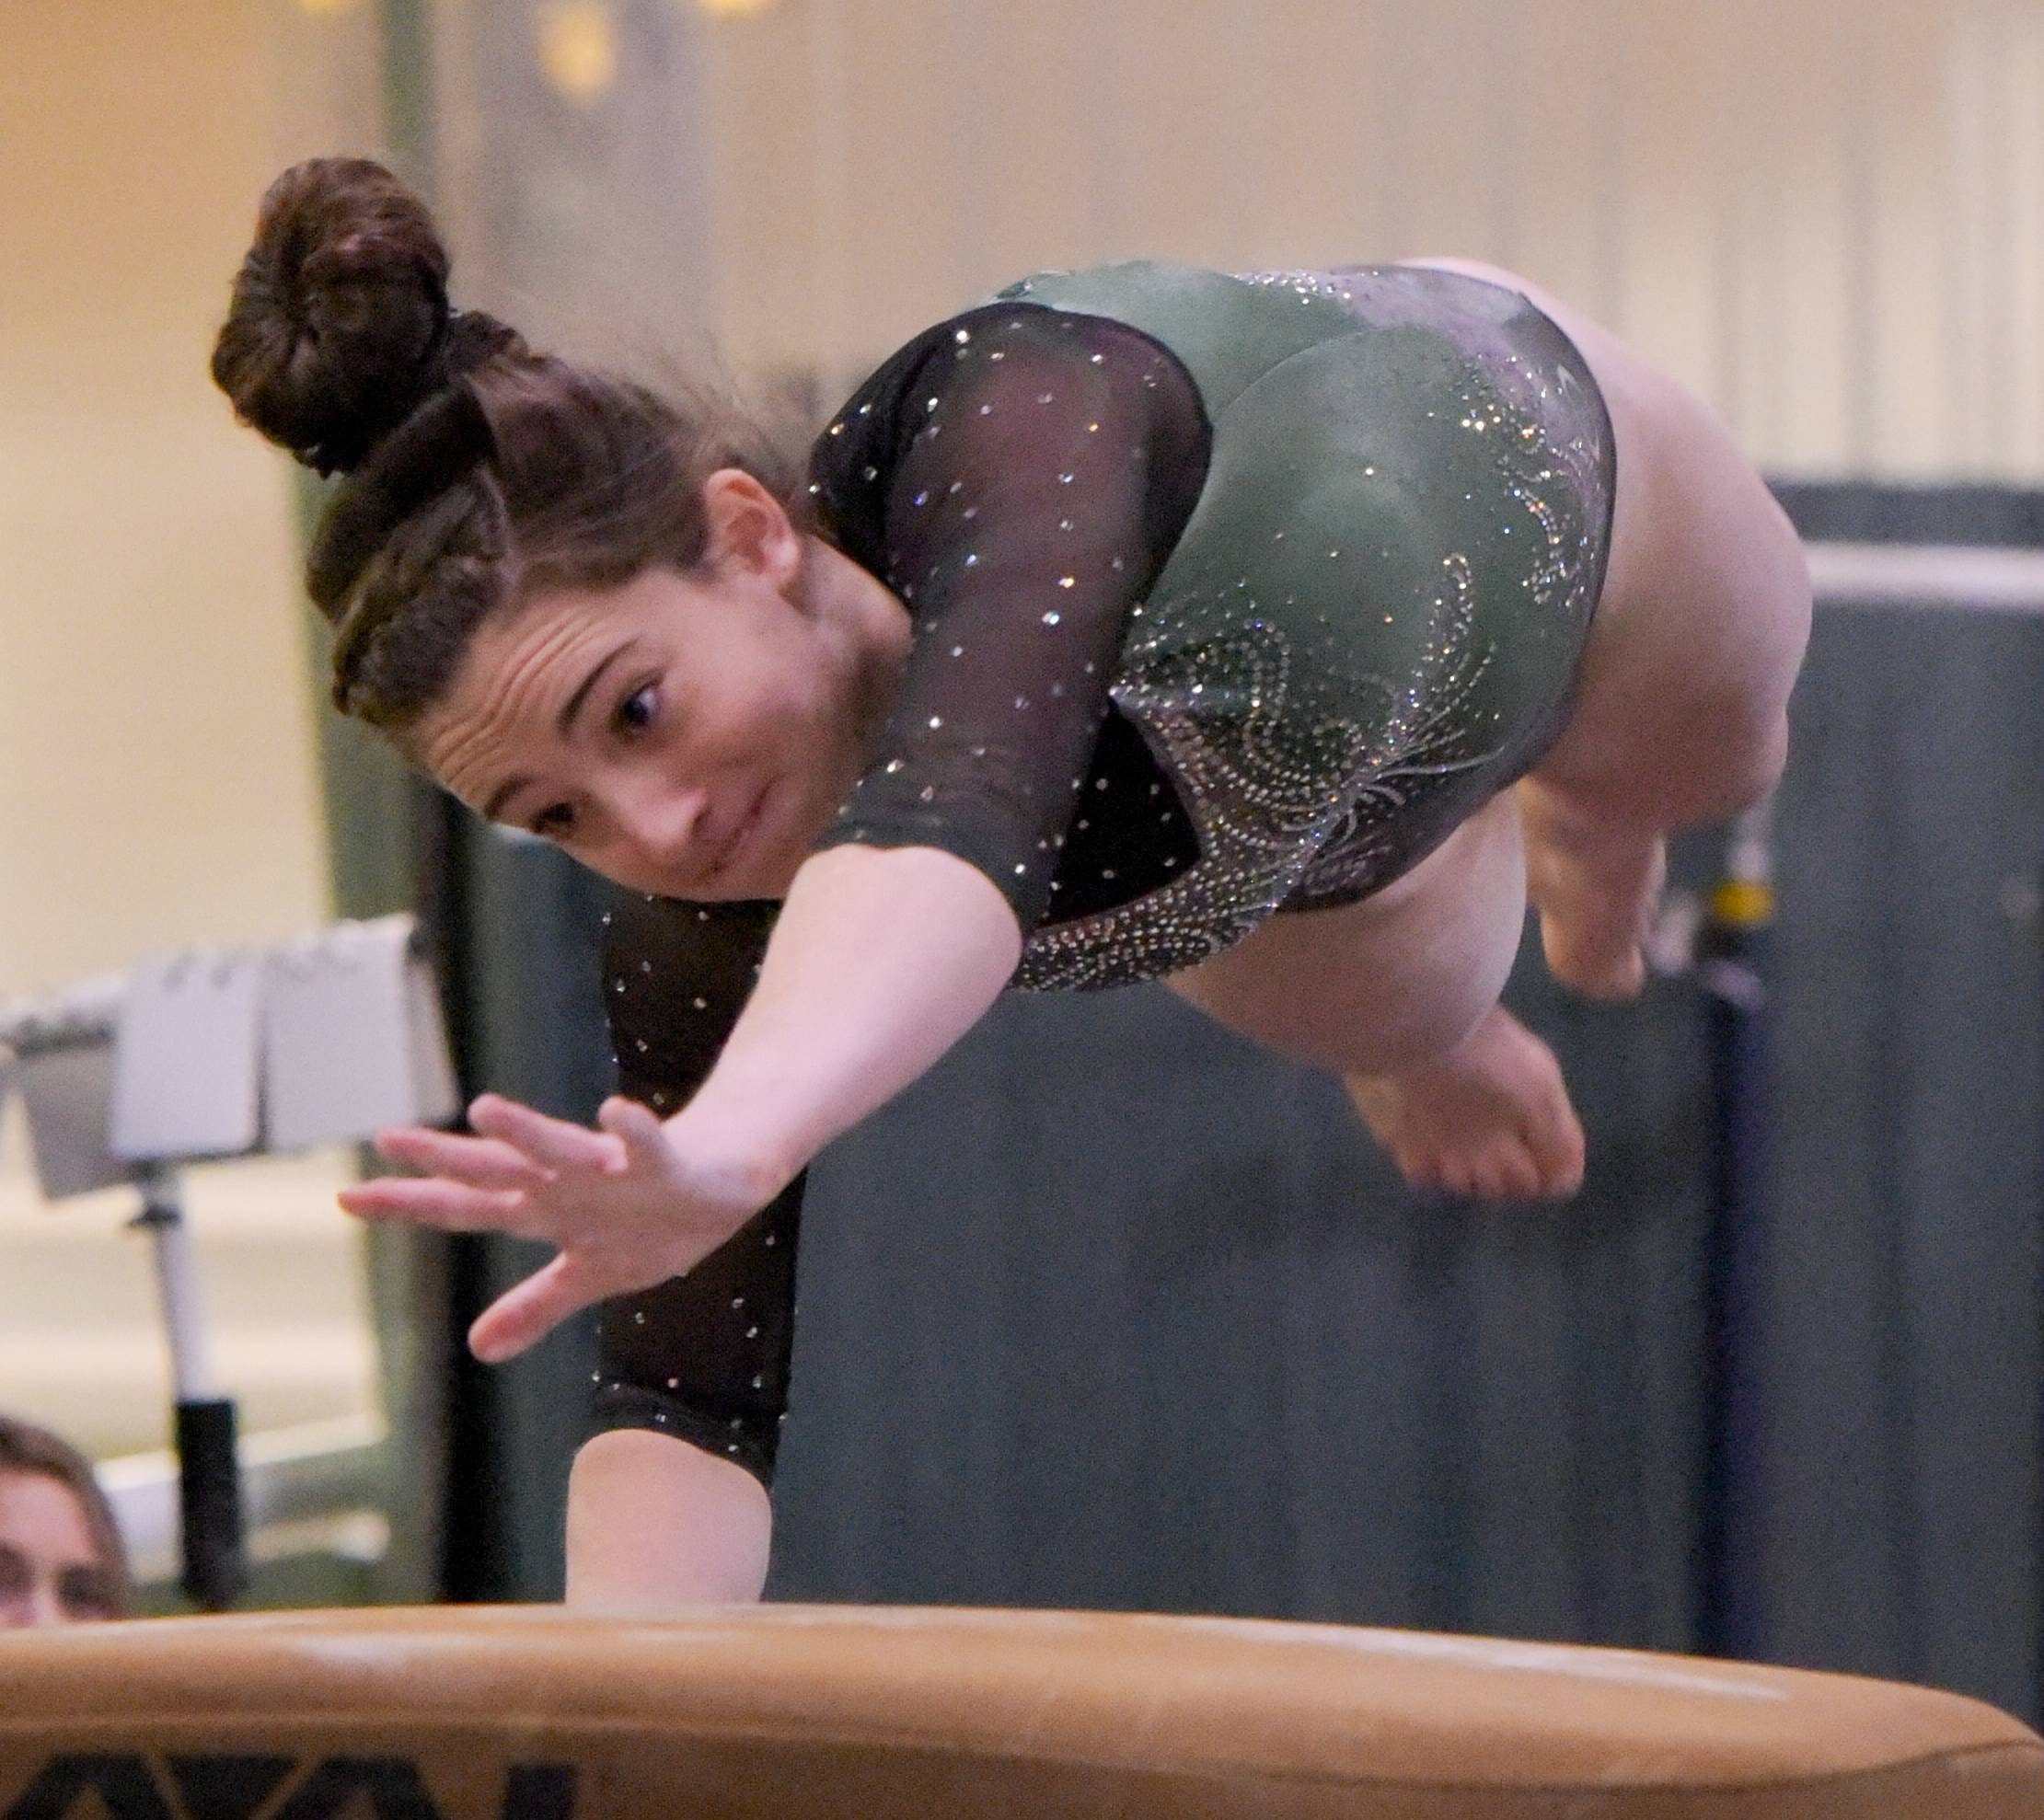 Glenbard West's Maddie Diab competes on the vault during the Glenbard West regional gymnastics meet on Wednesday, Jan. 31, 2018.